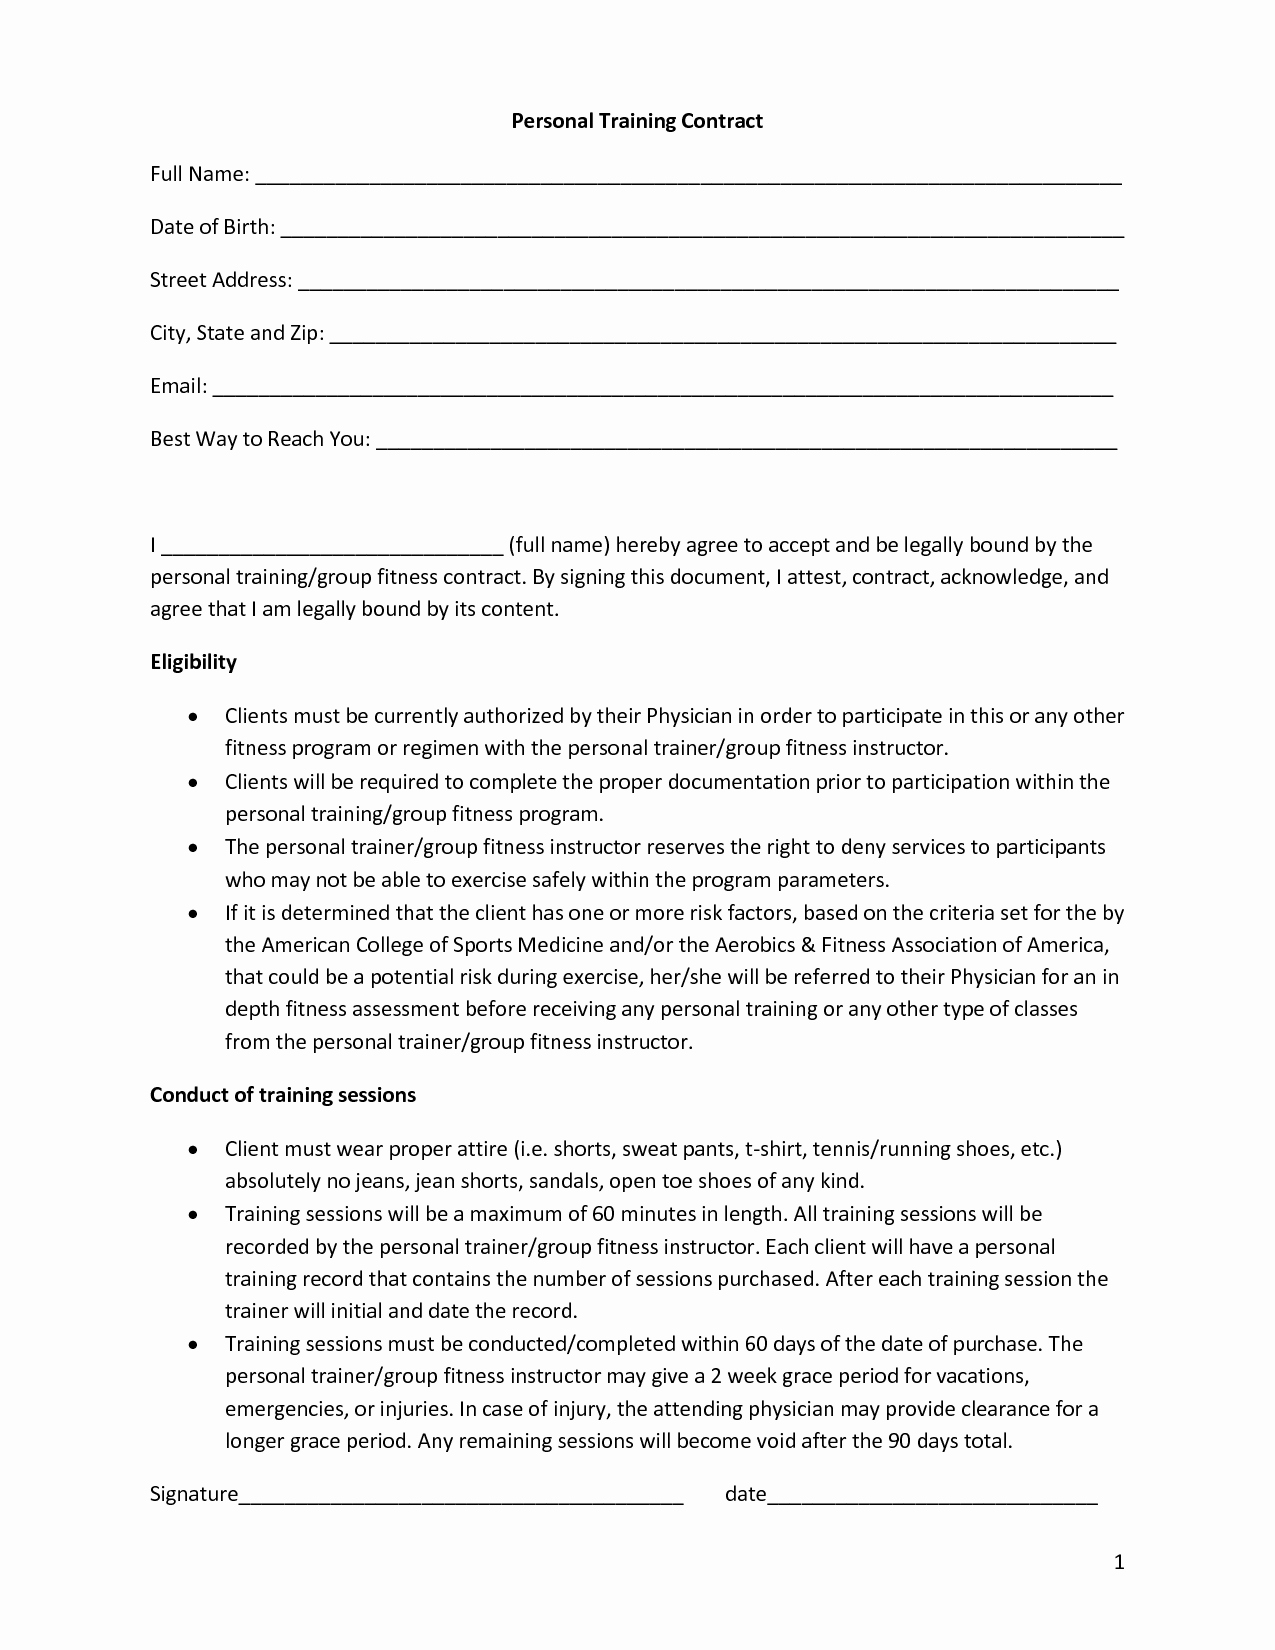 Personal Training Contract Template Awesome Personal Training Contract Template Free Printable Documents